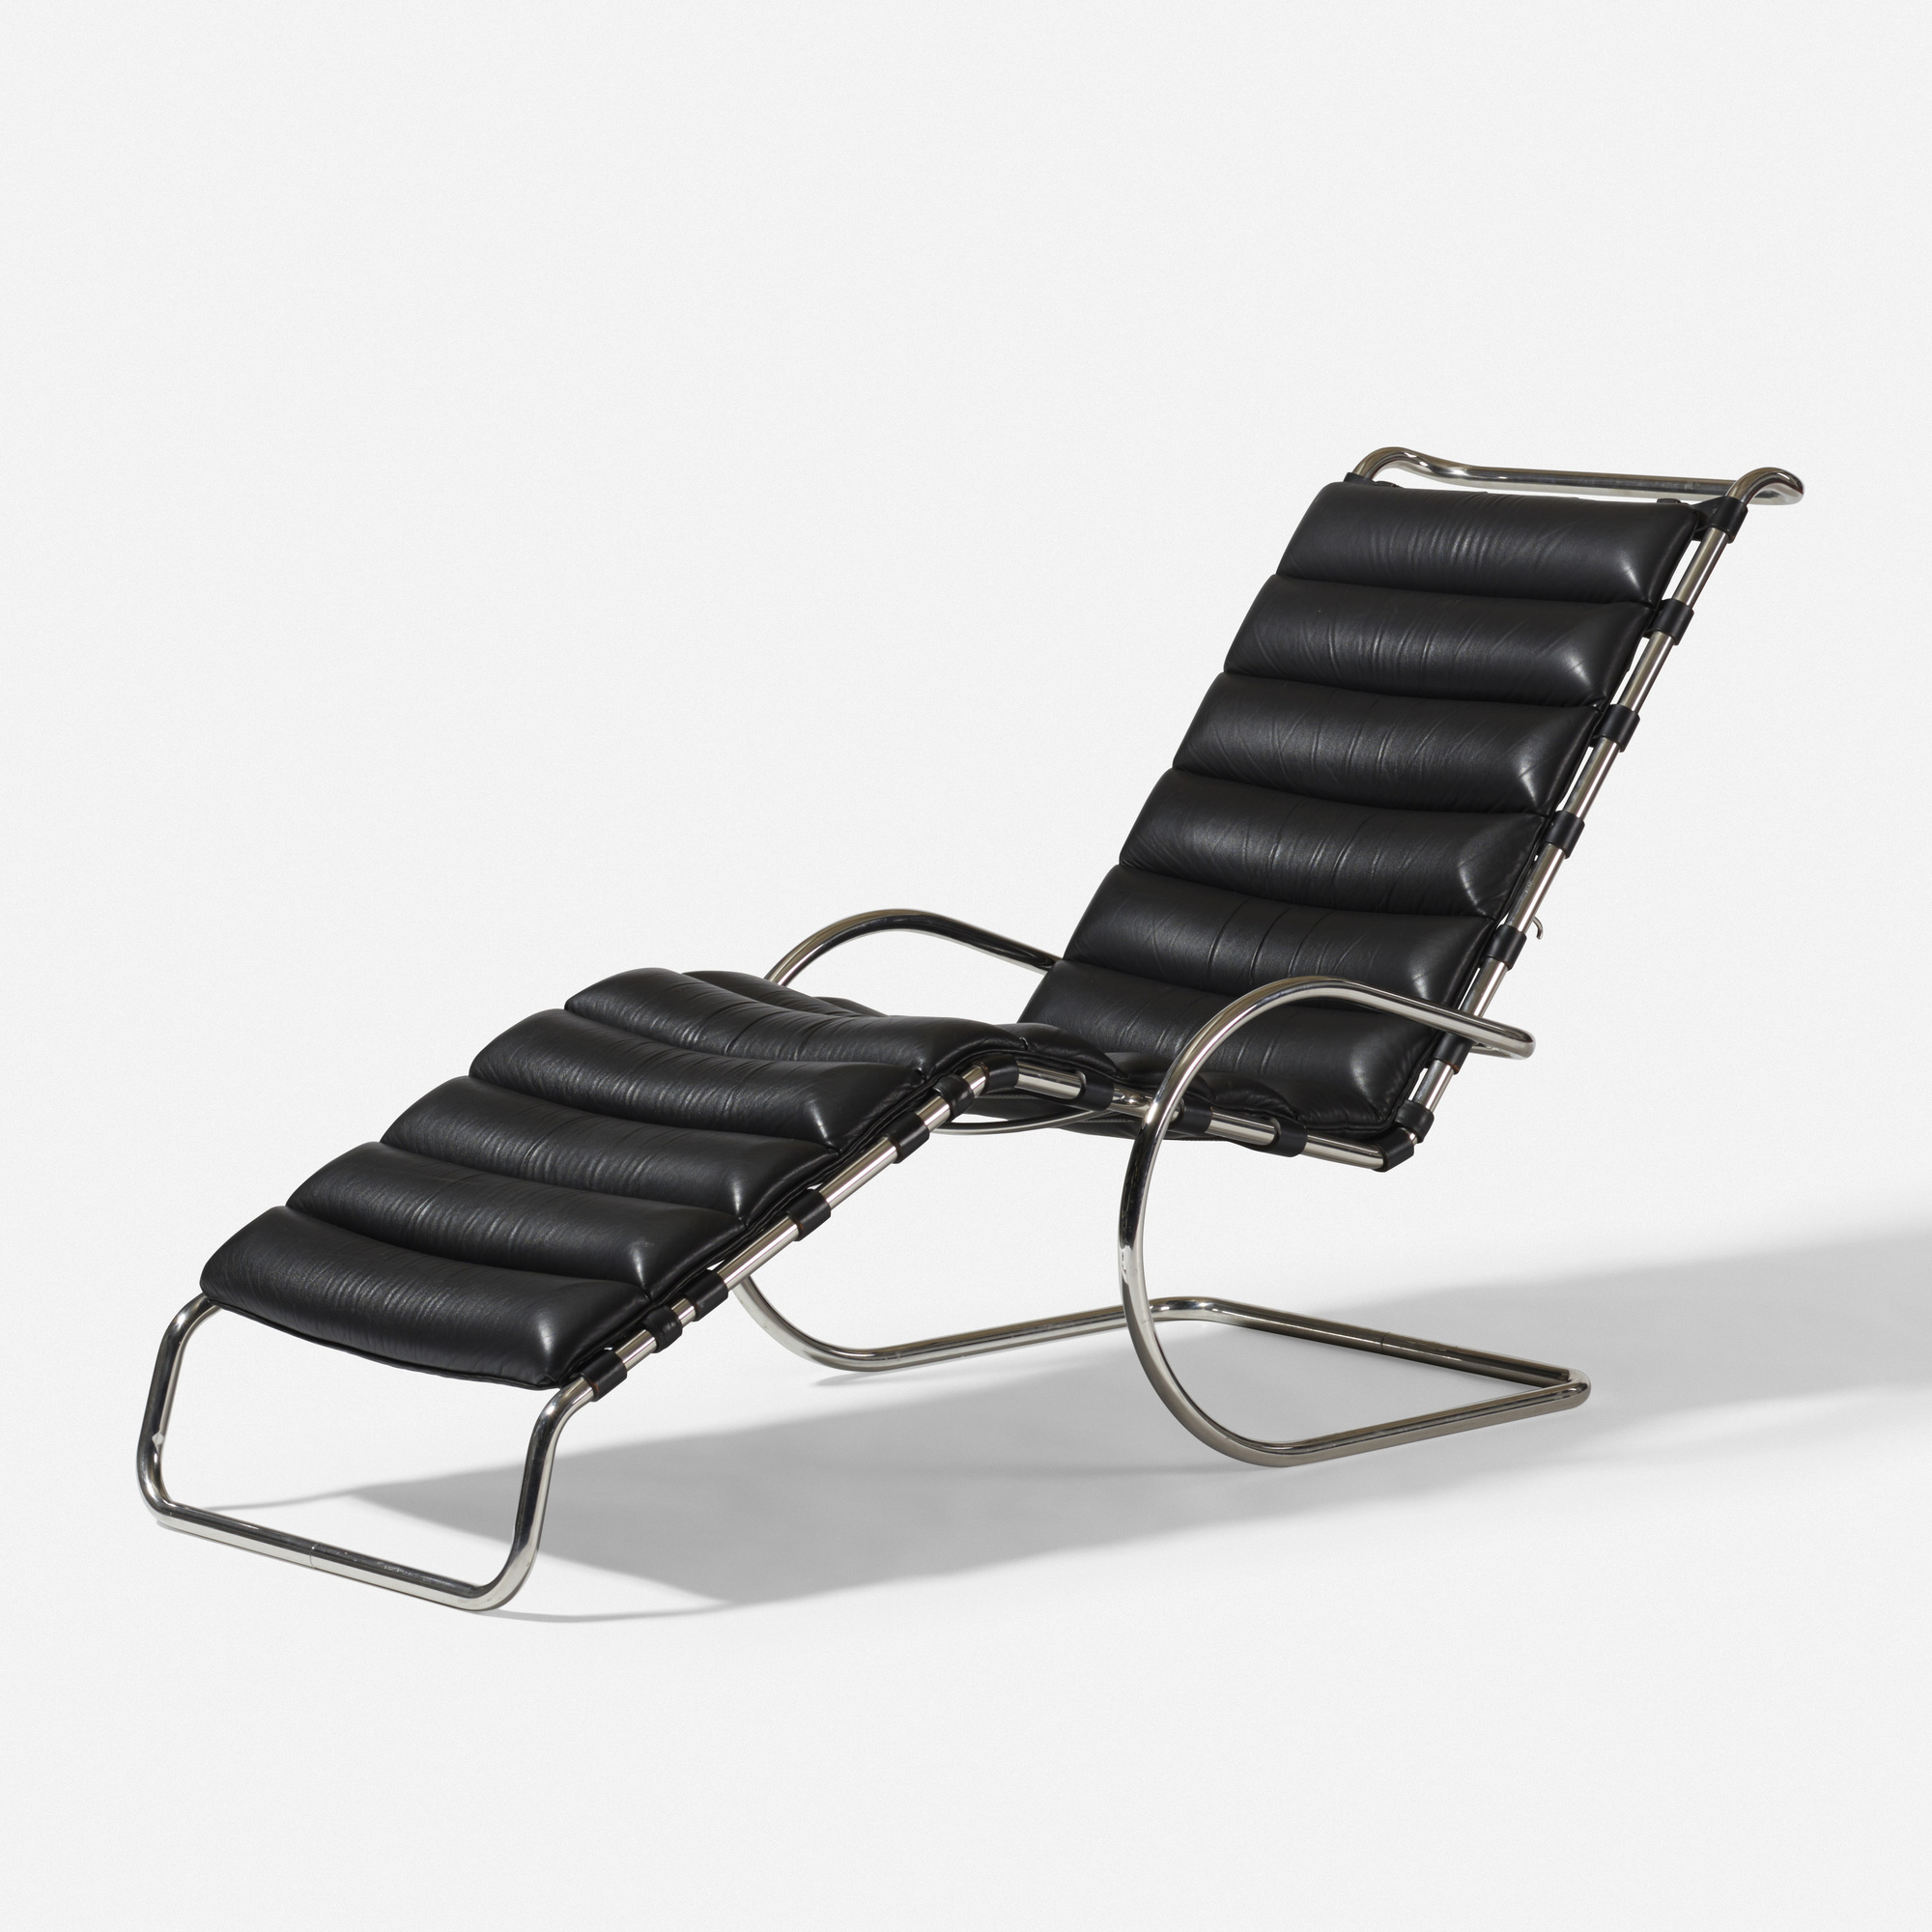 198 Ludwig Mies Van Der Rohe Model 242 Chaise Lounge The Robert